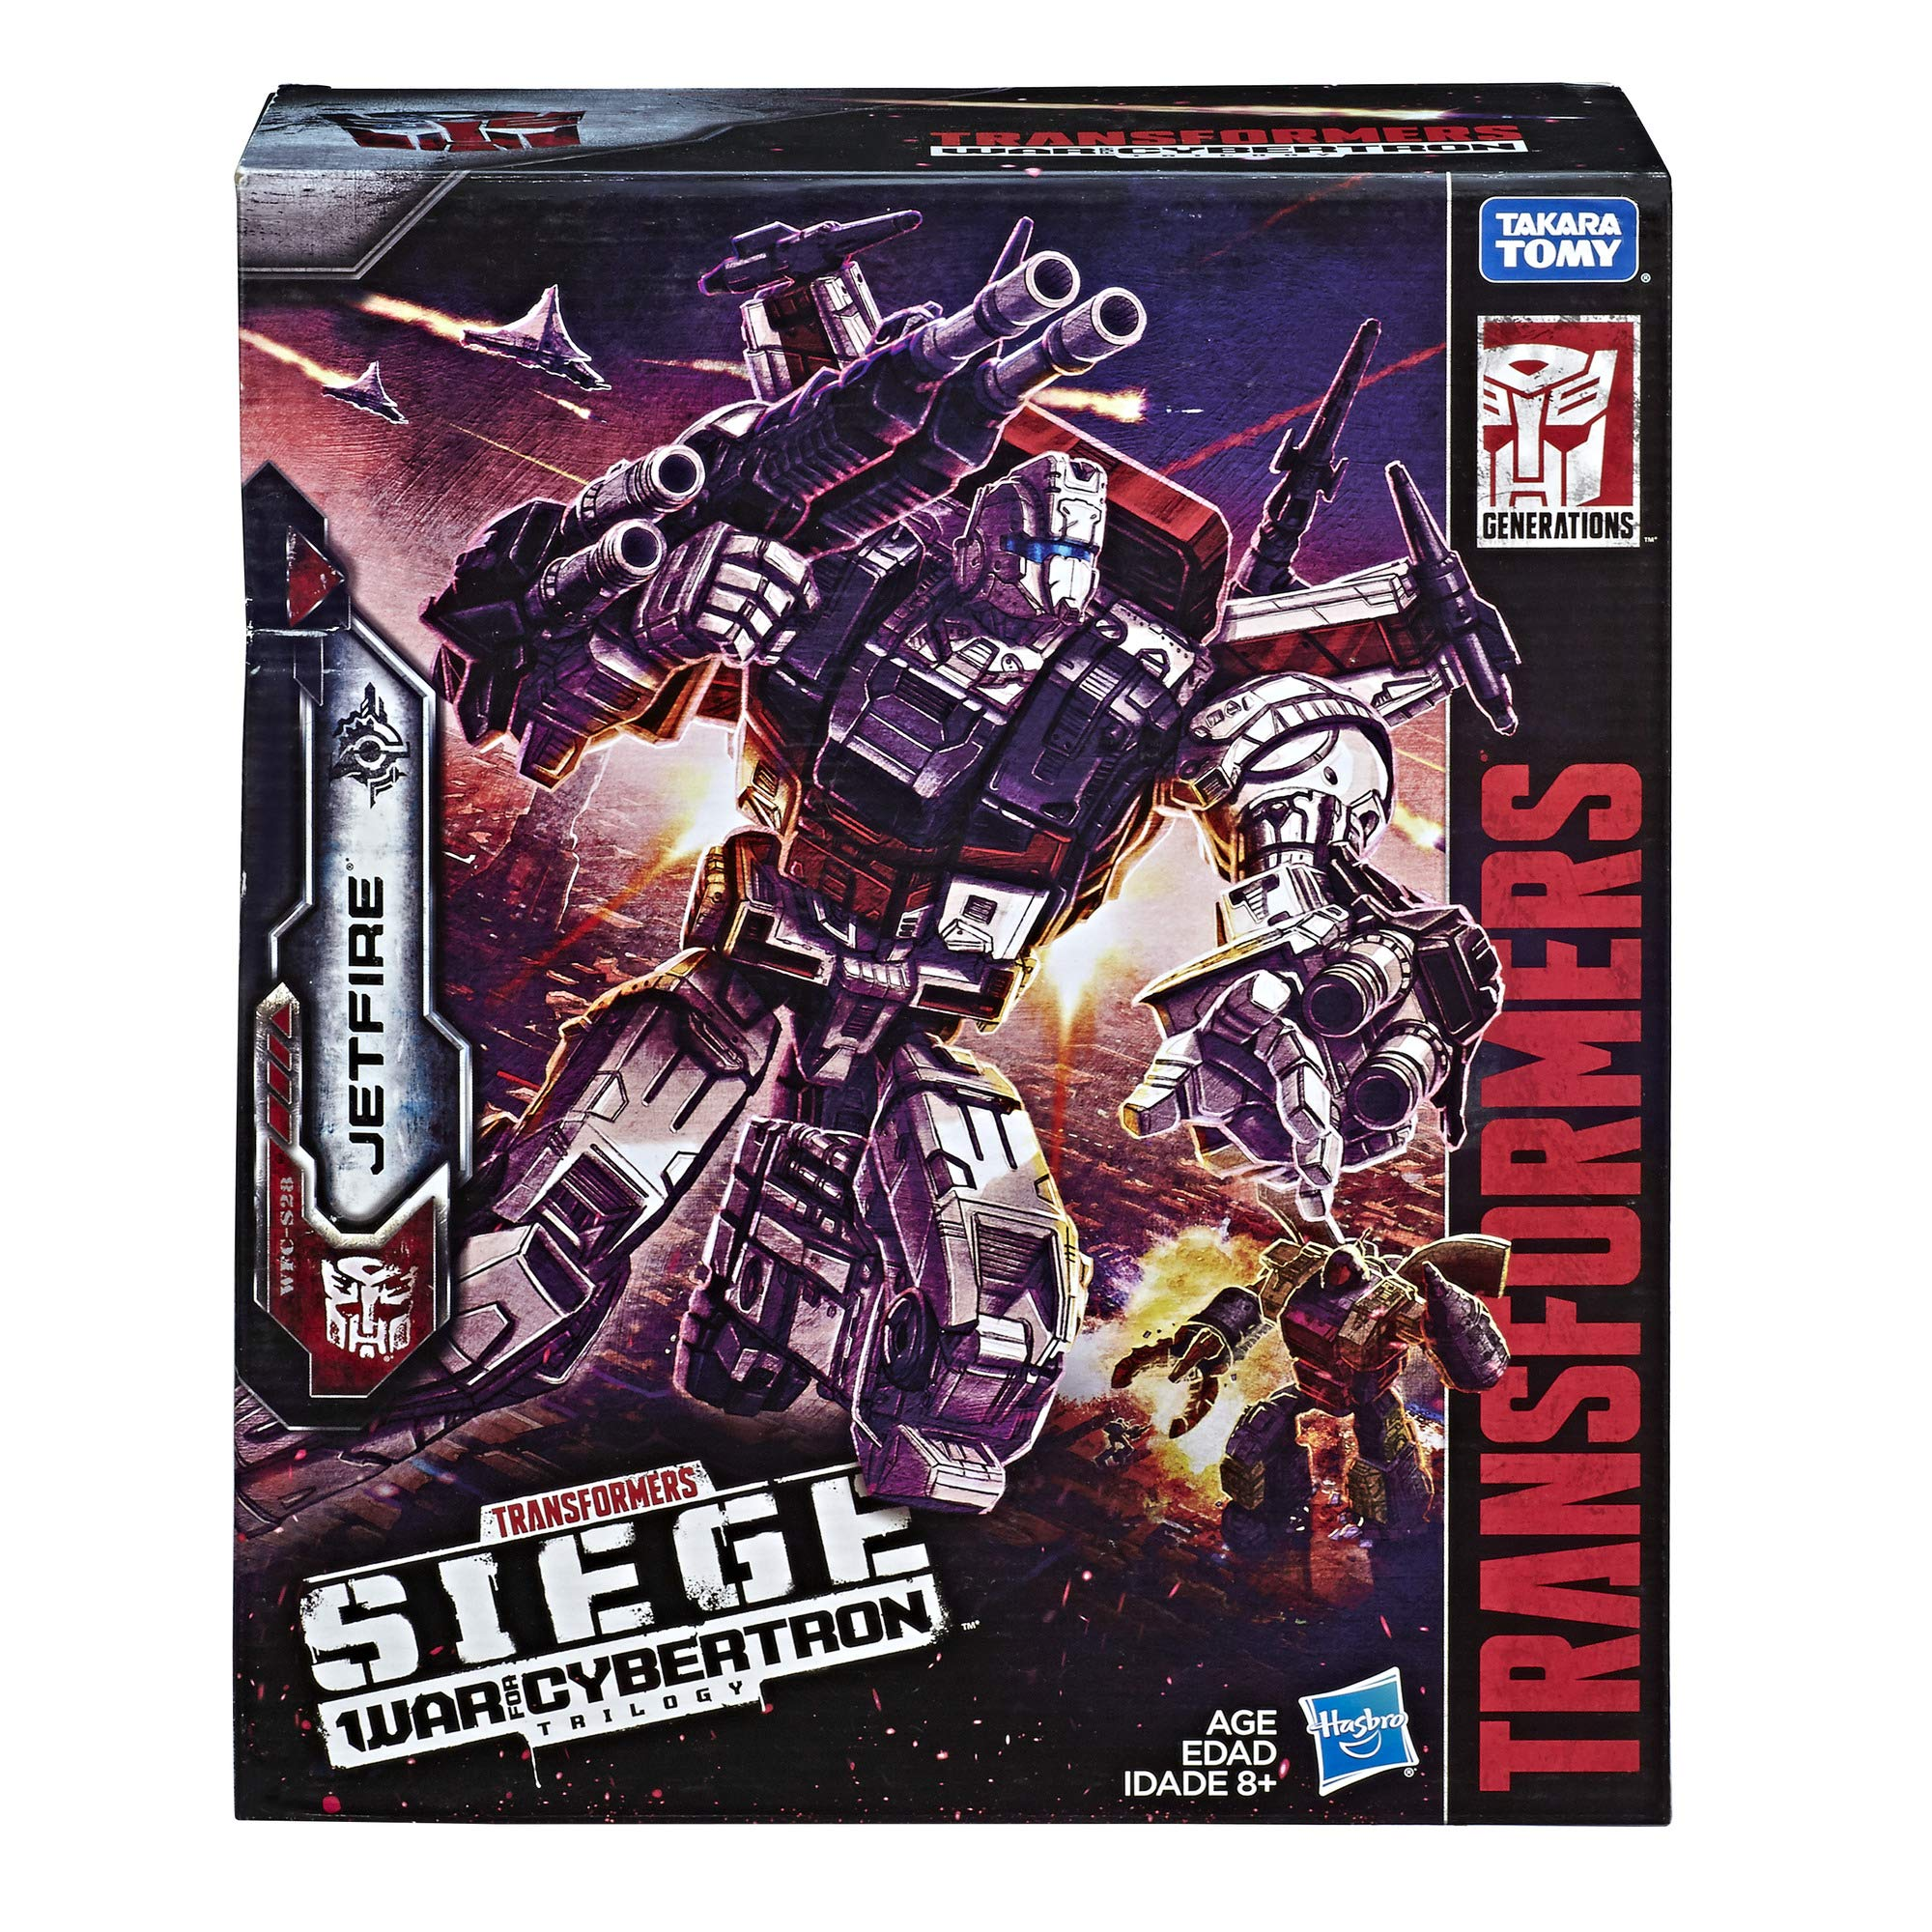 Transformers Toys Generations War for Cybertron Commander Wfc-S28 Jetfire Action Figure - Siege Chapter - Adults & Kids Ages 8 & Up, 11'' by Transformers (Image #4)